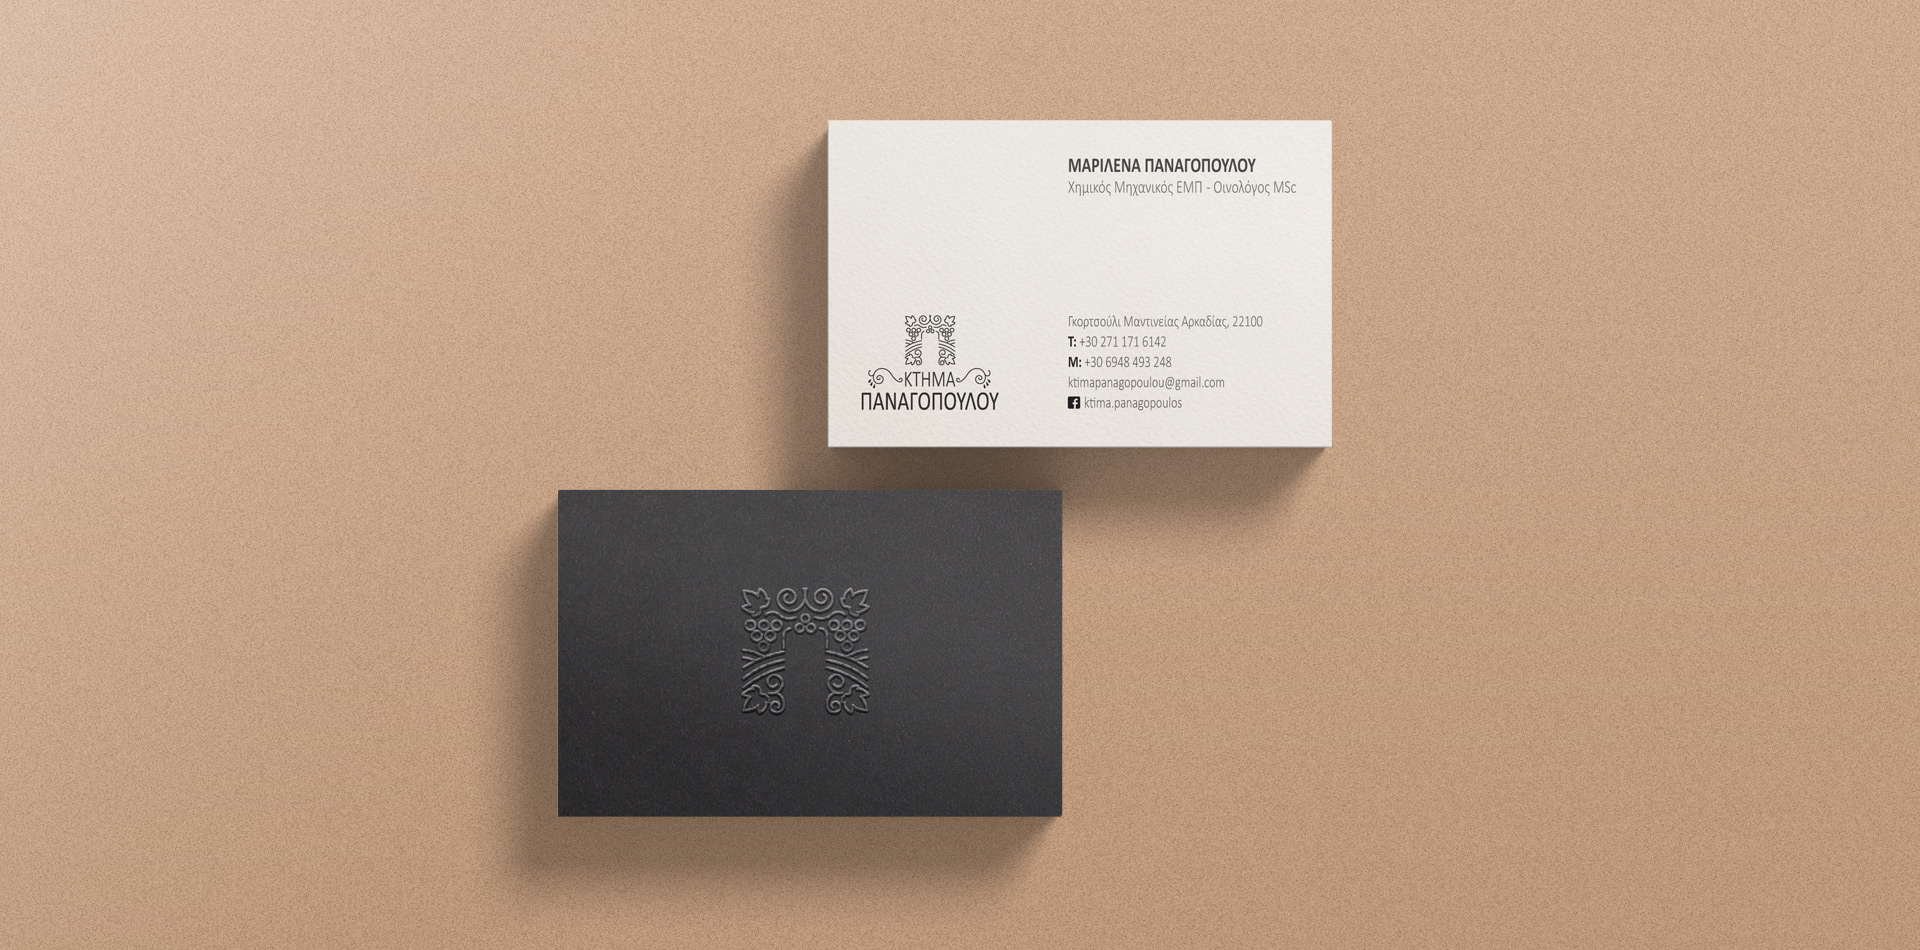 business cards ktima panagopoulos